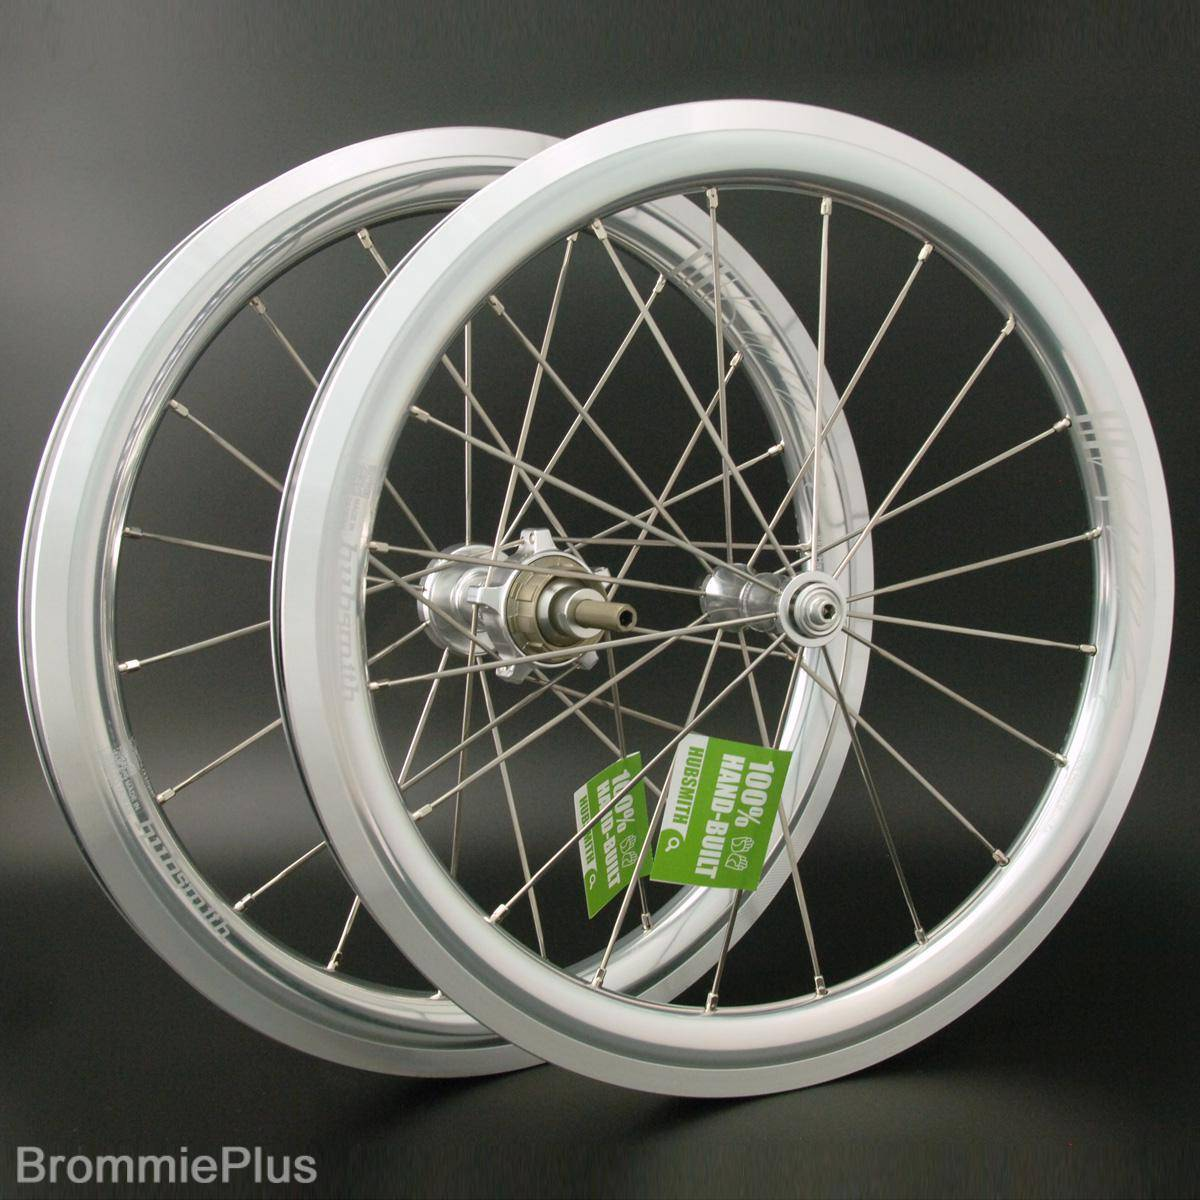 Hubsmith A349 Bumbee 3 Speed wheelset for Brompton - Silver